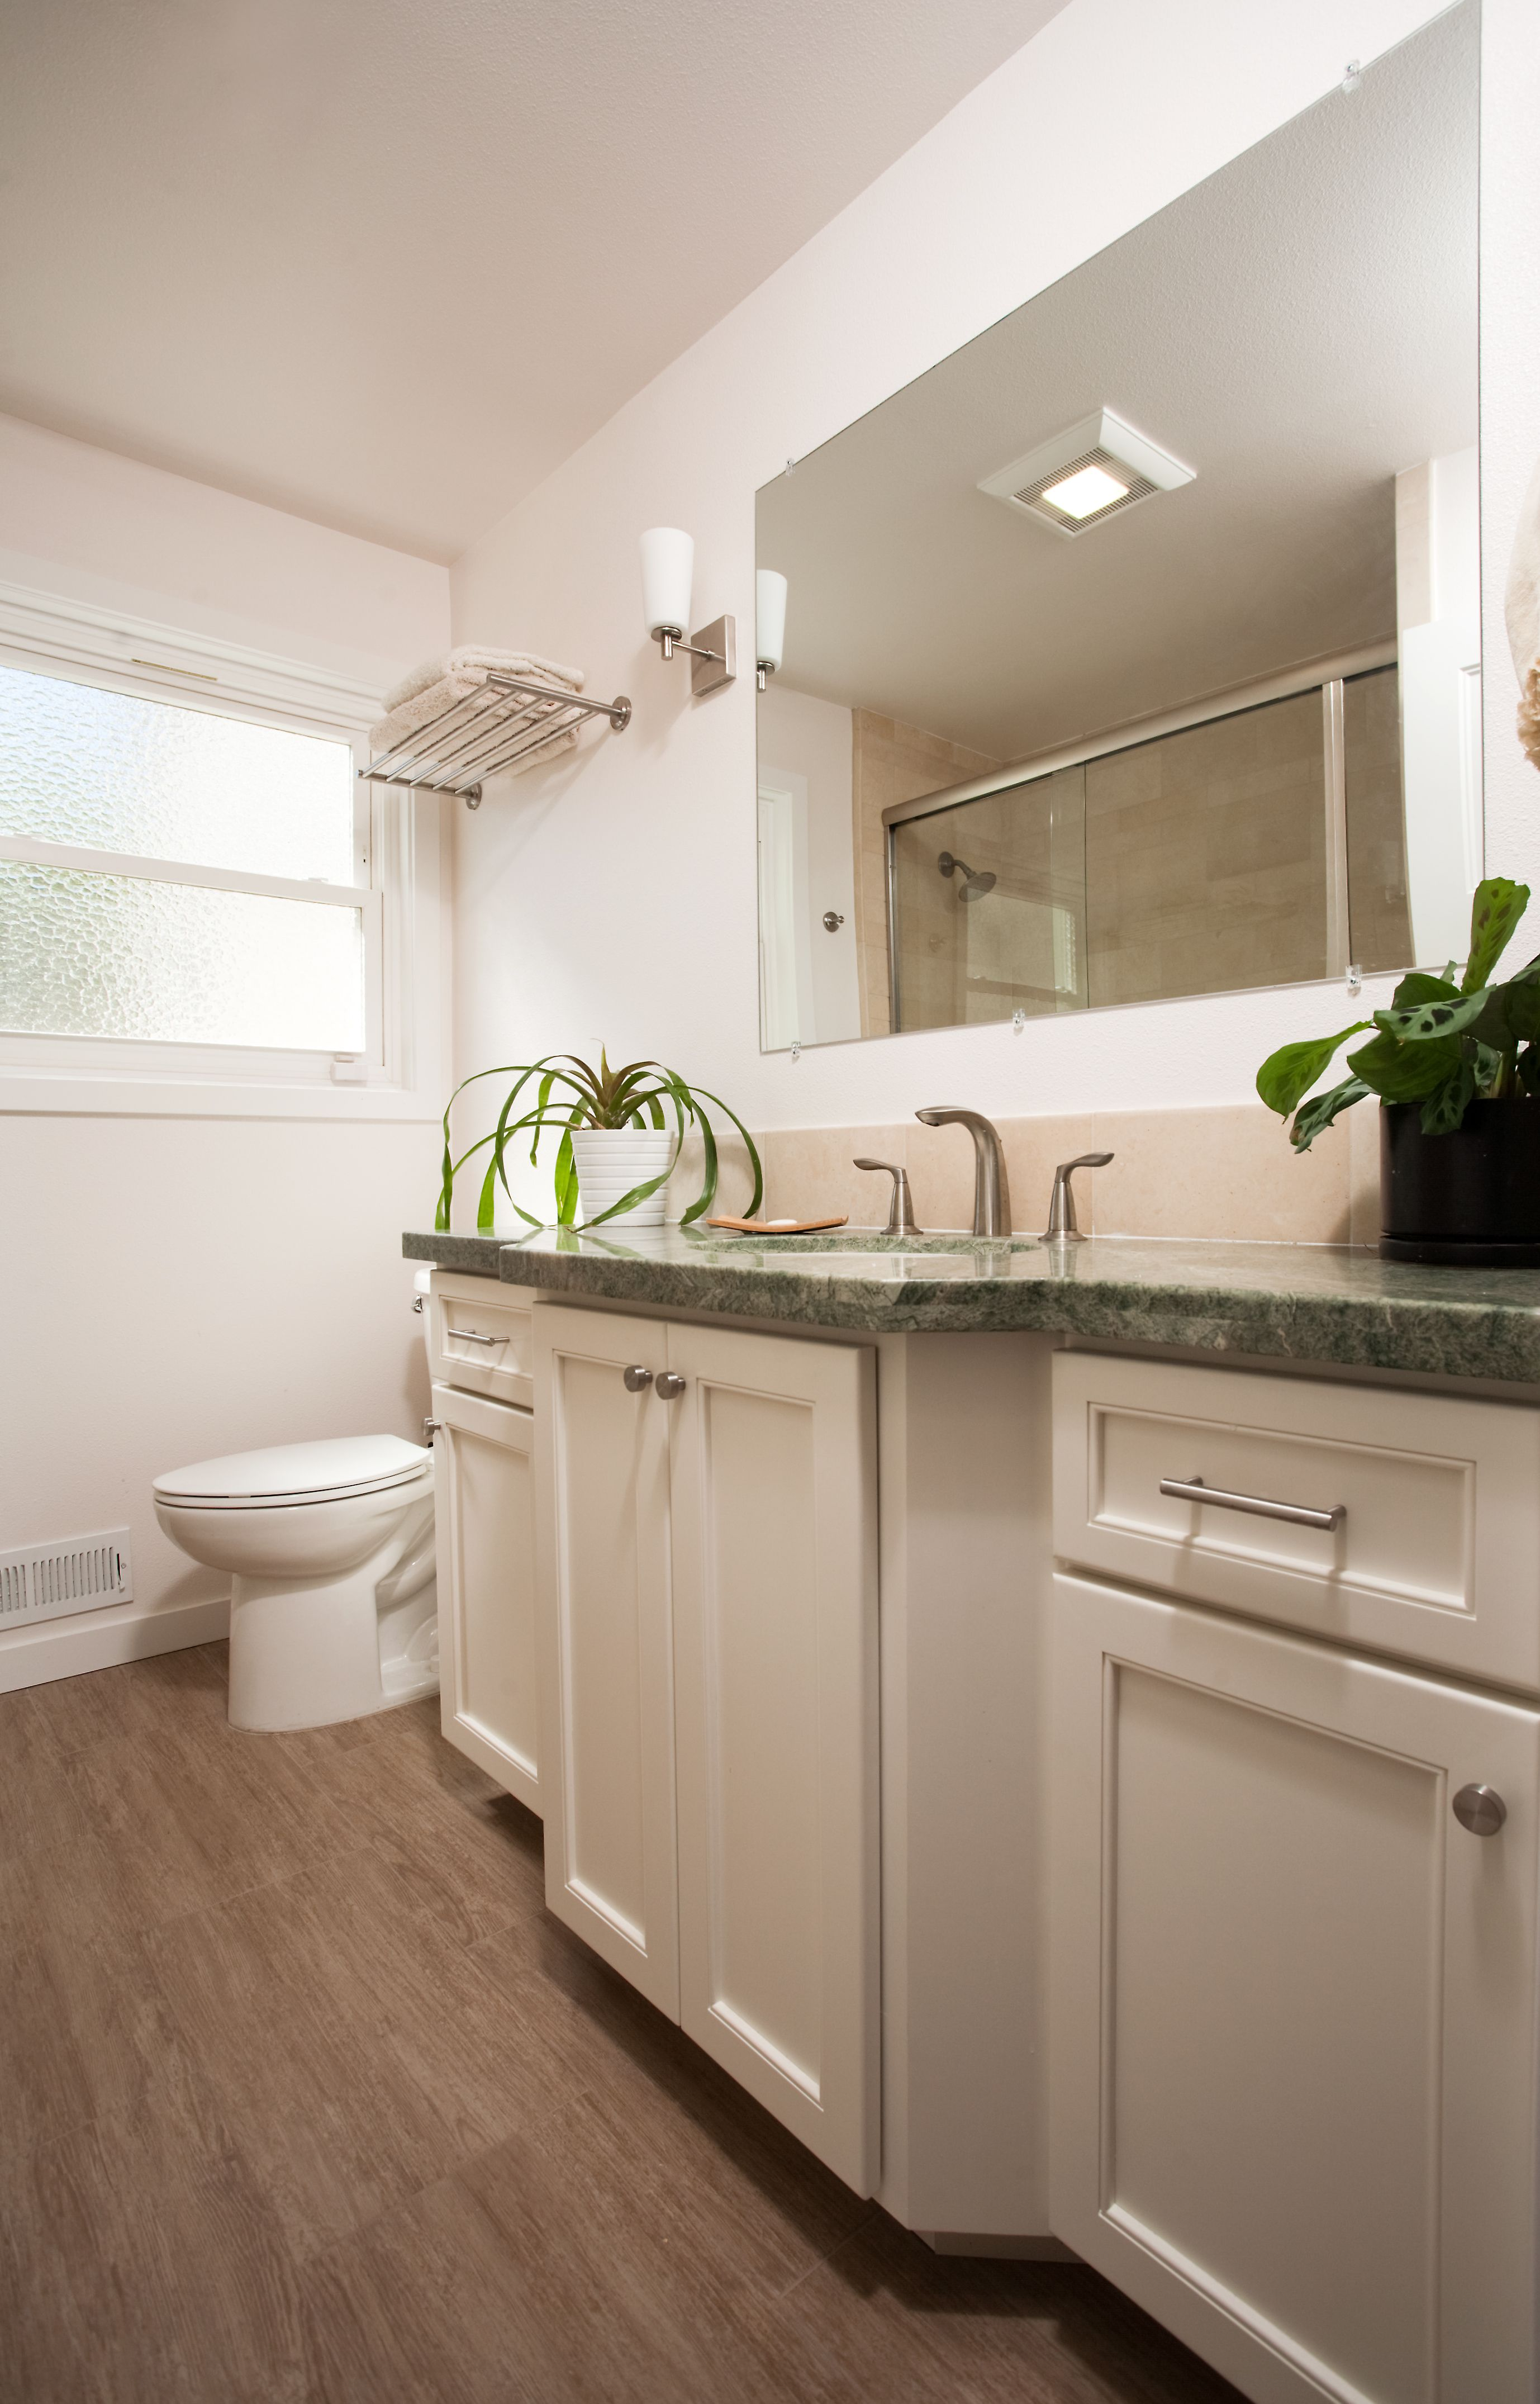 Best Custom Cabinetry Photo By James Dewrance — In Sunnyvale Ca Home Remodeling Bath 400 x 300